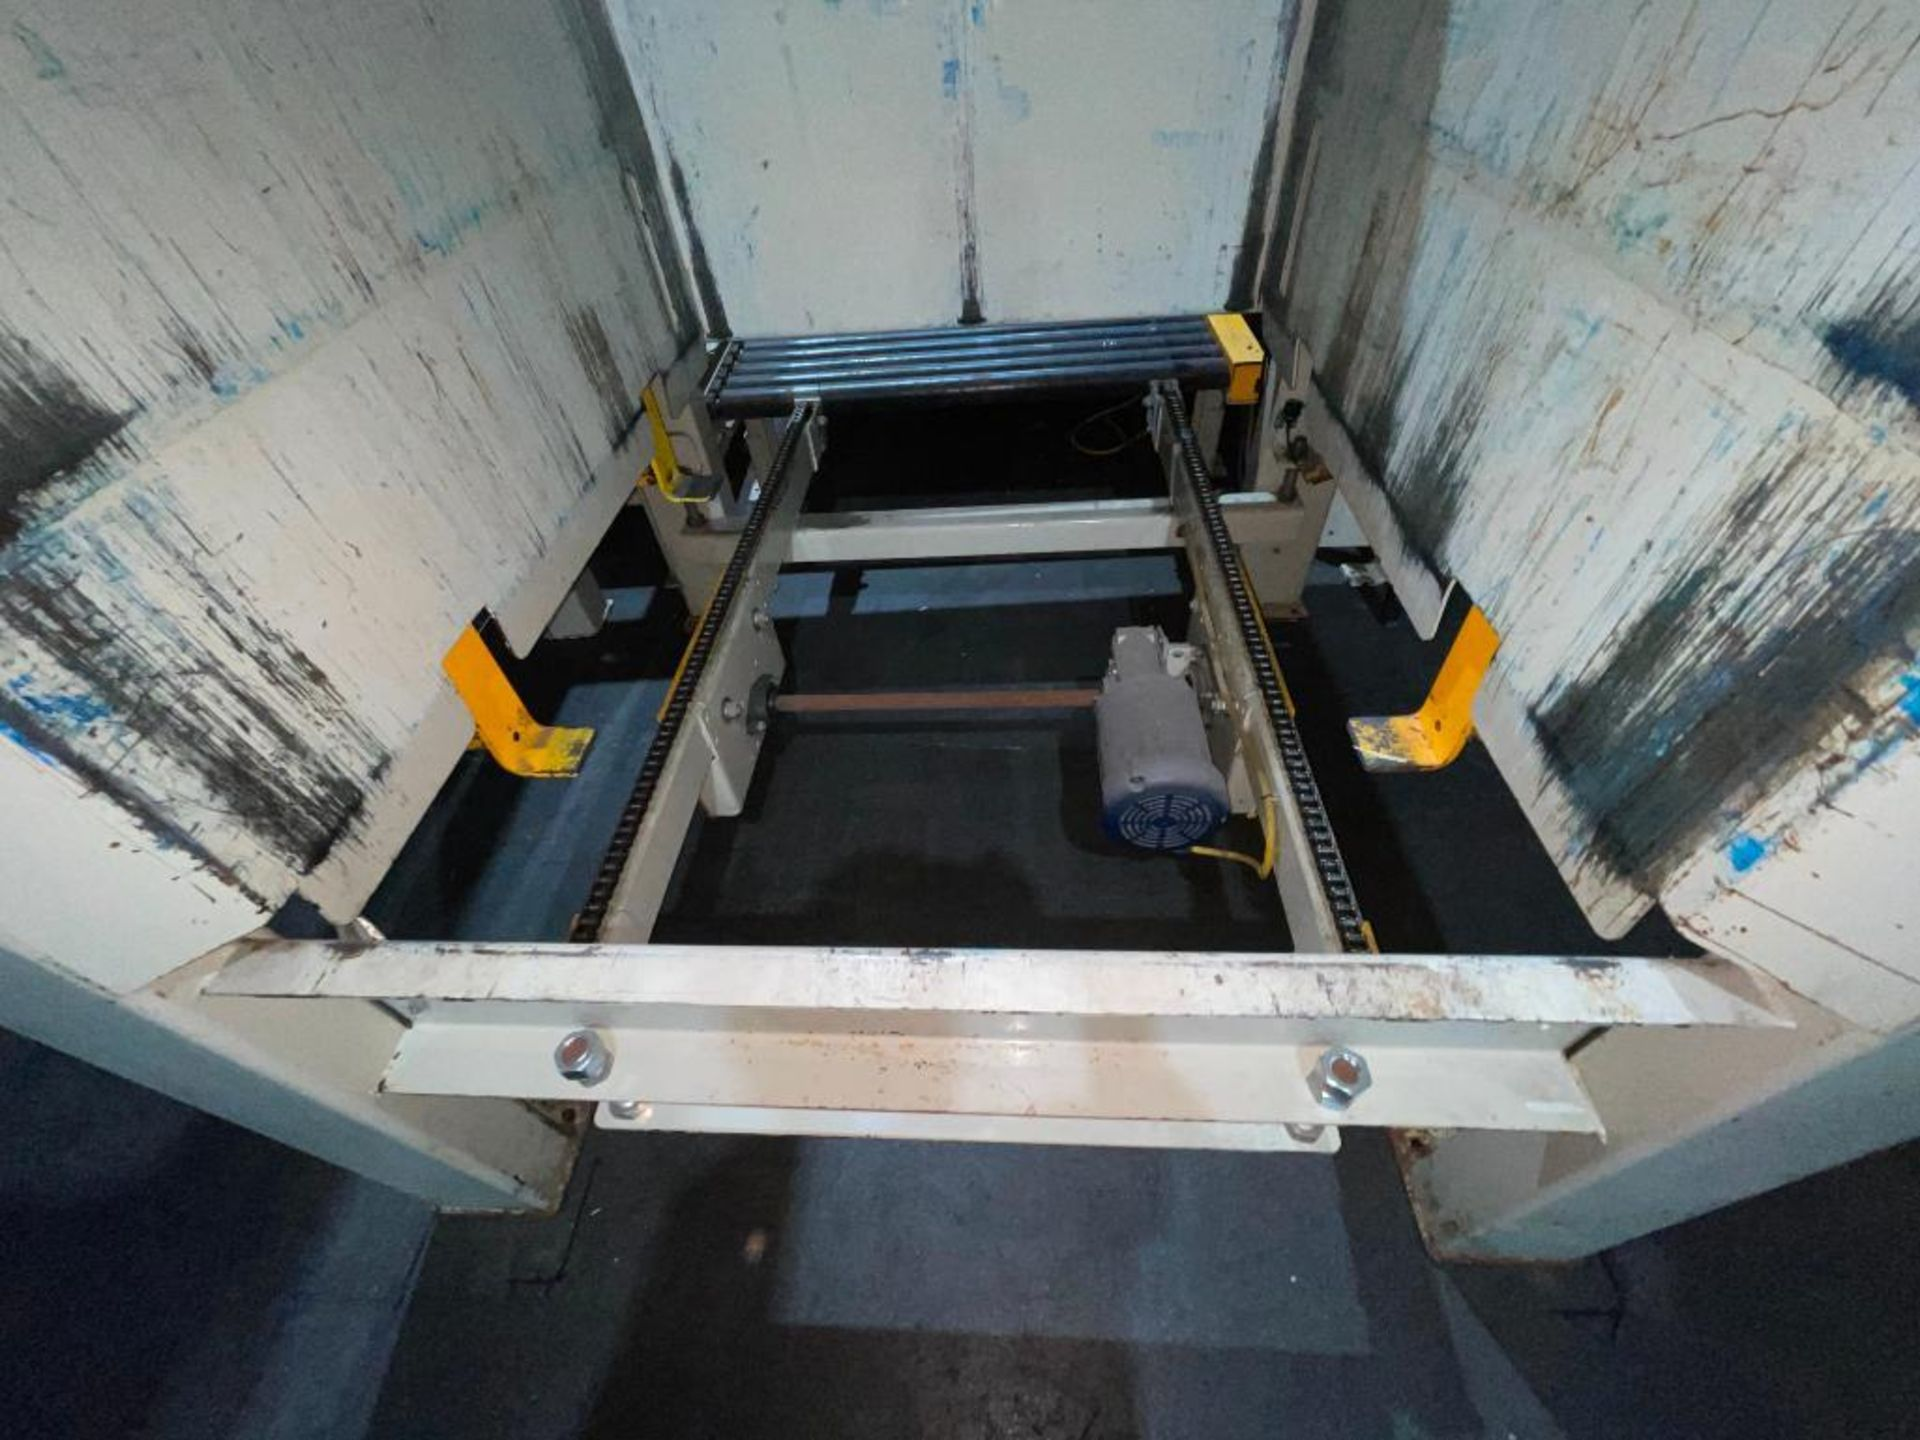 2013 TopTier downstacker, model DS with integrated TopTier pallet wrapper - Image 49 of 66